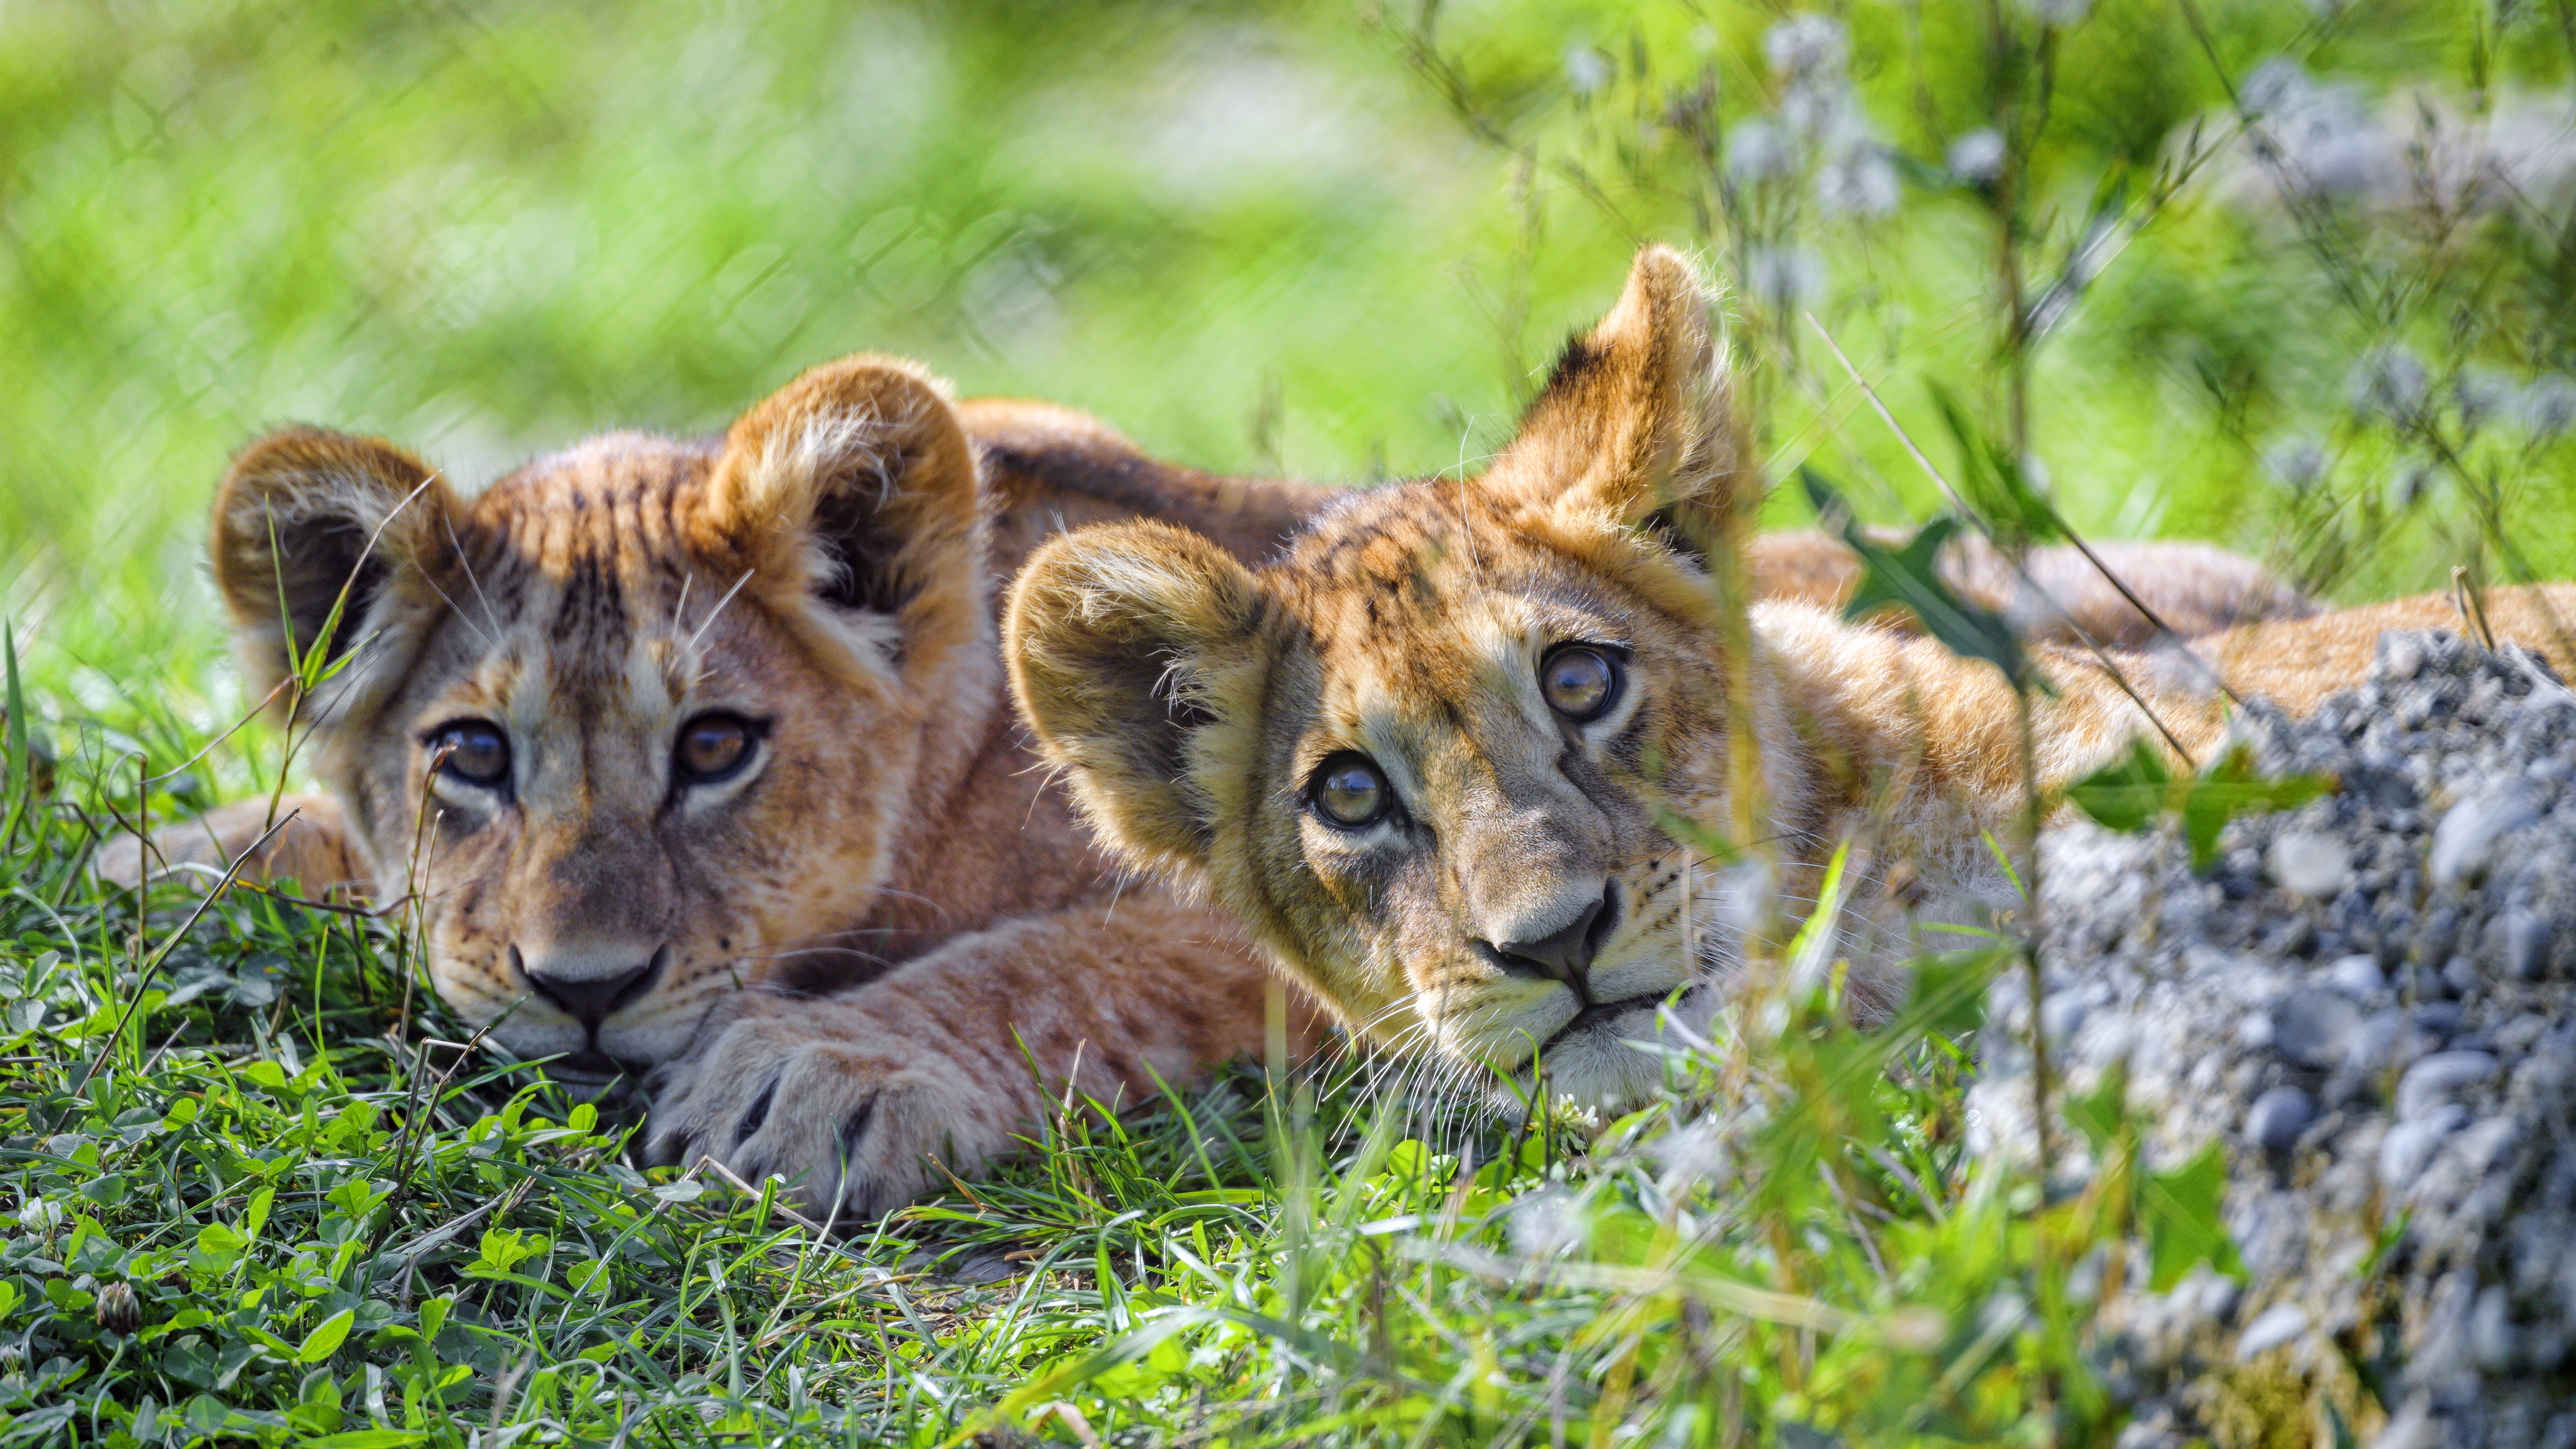 104675 download wallpaper Animals, Lion Cub, Lion, Young, Joey, Sight, Opinion, Predator, Funny screensavers and pictures for free